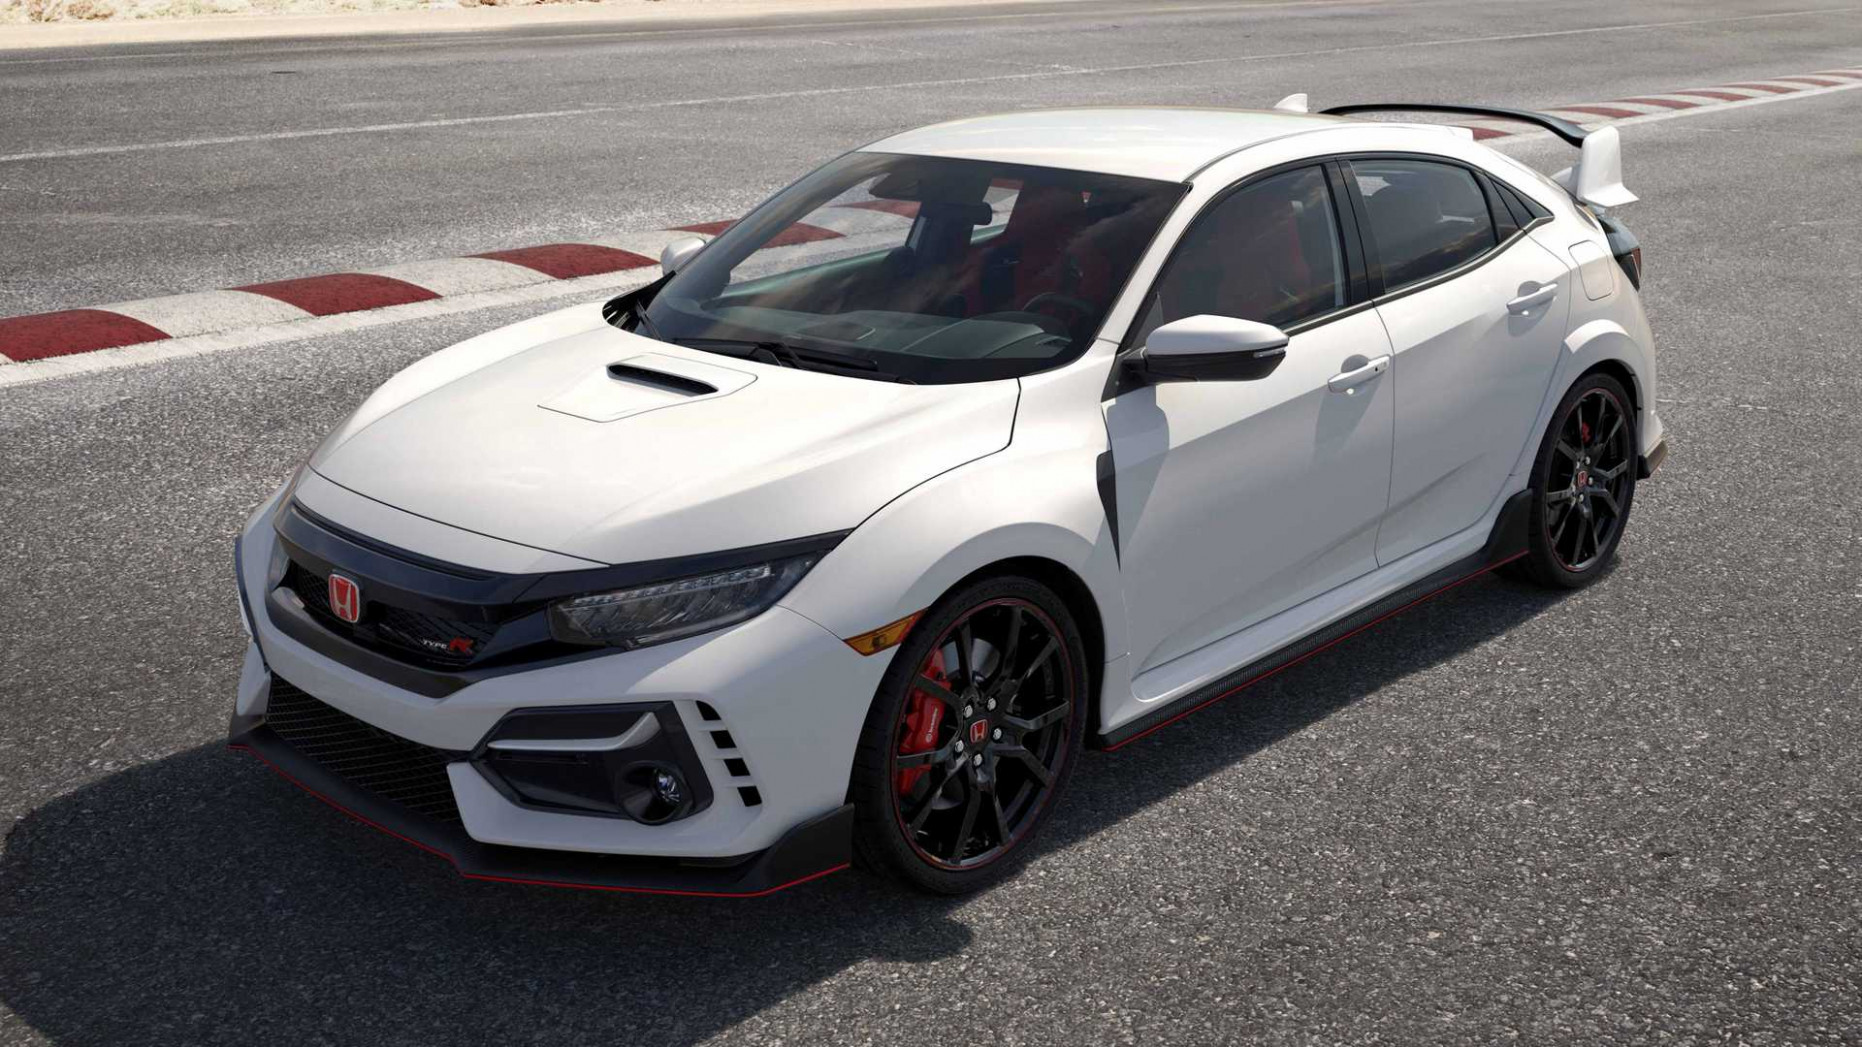 8 Honda Civic Type R Gets Price Bump, But It's Worth It